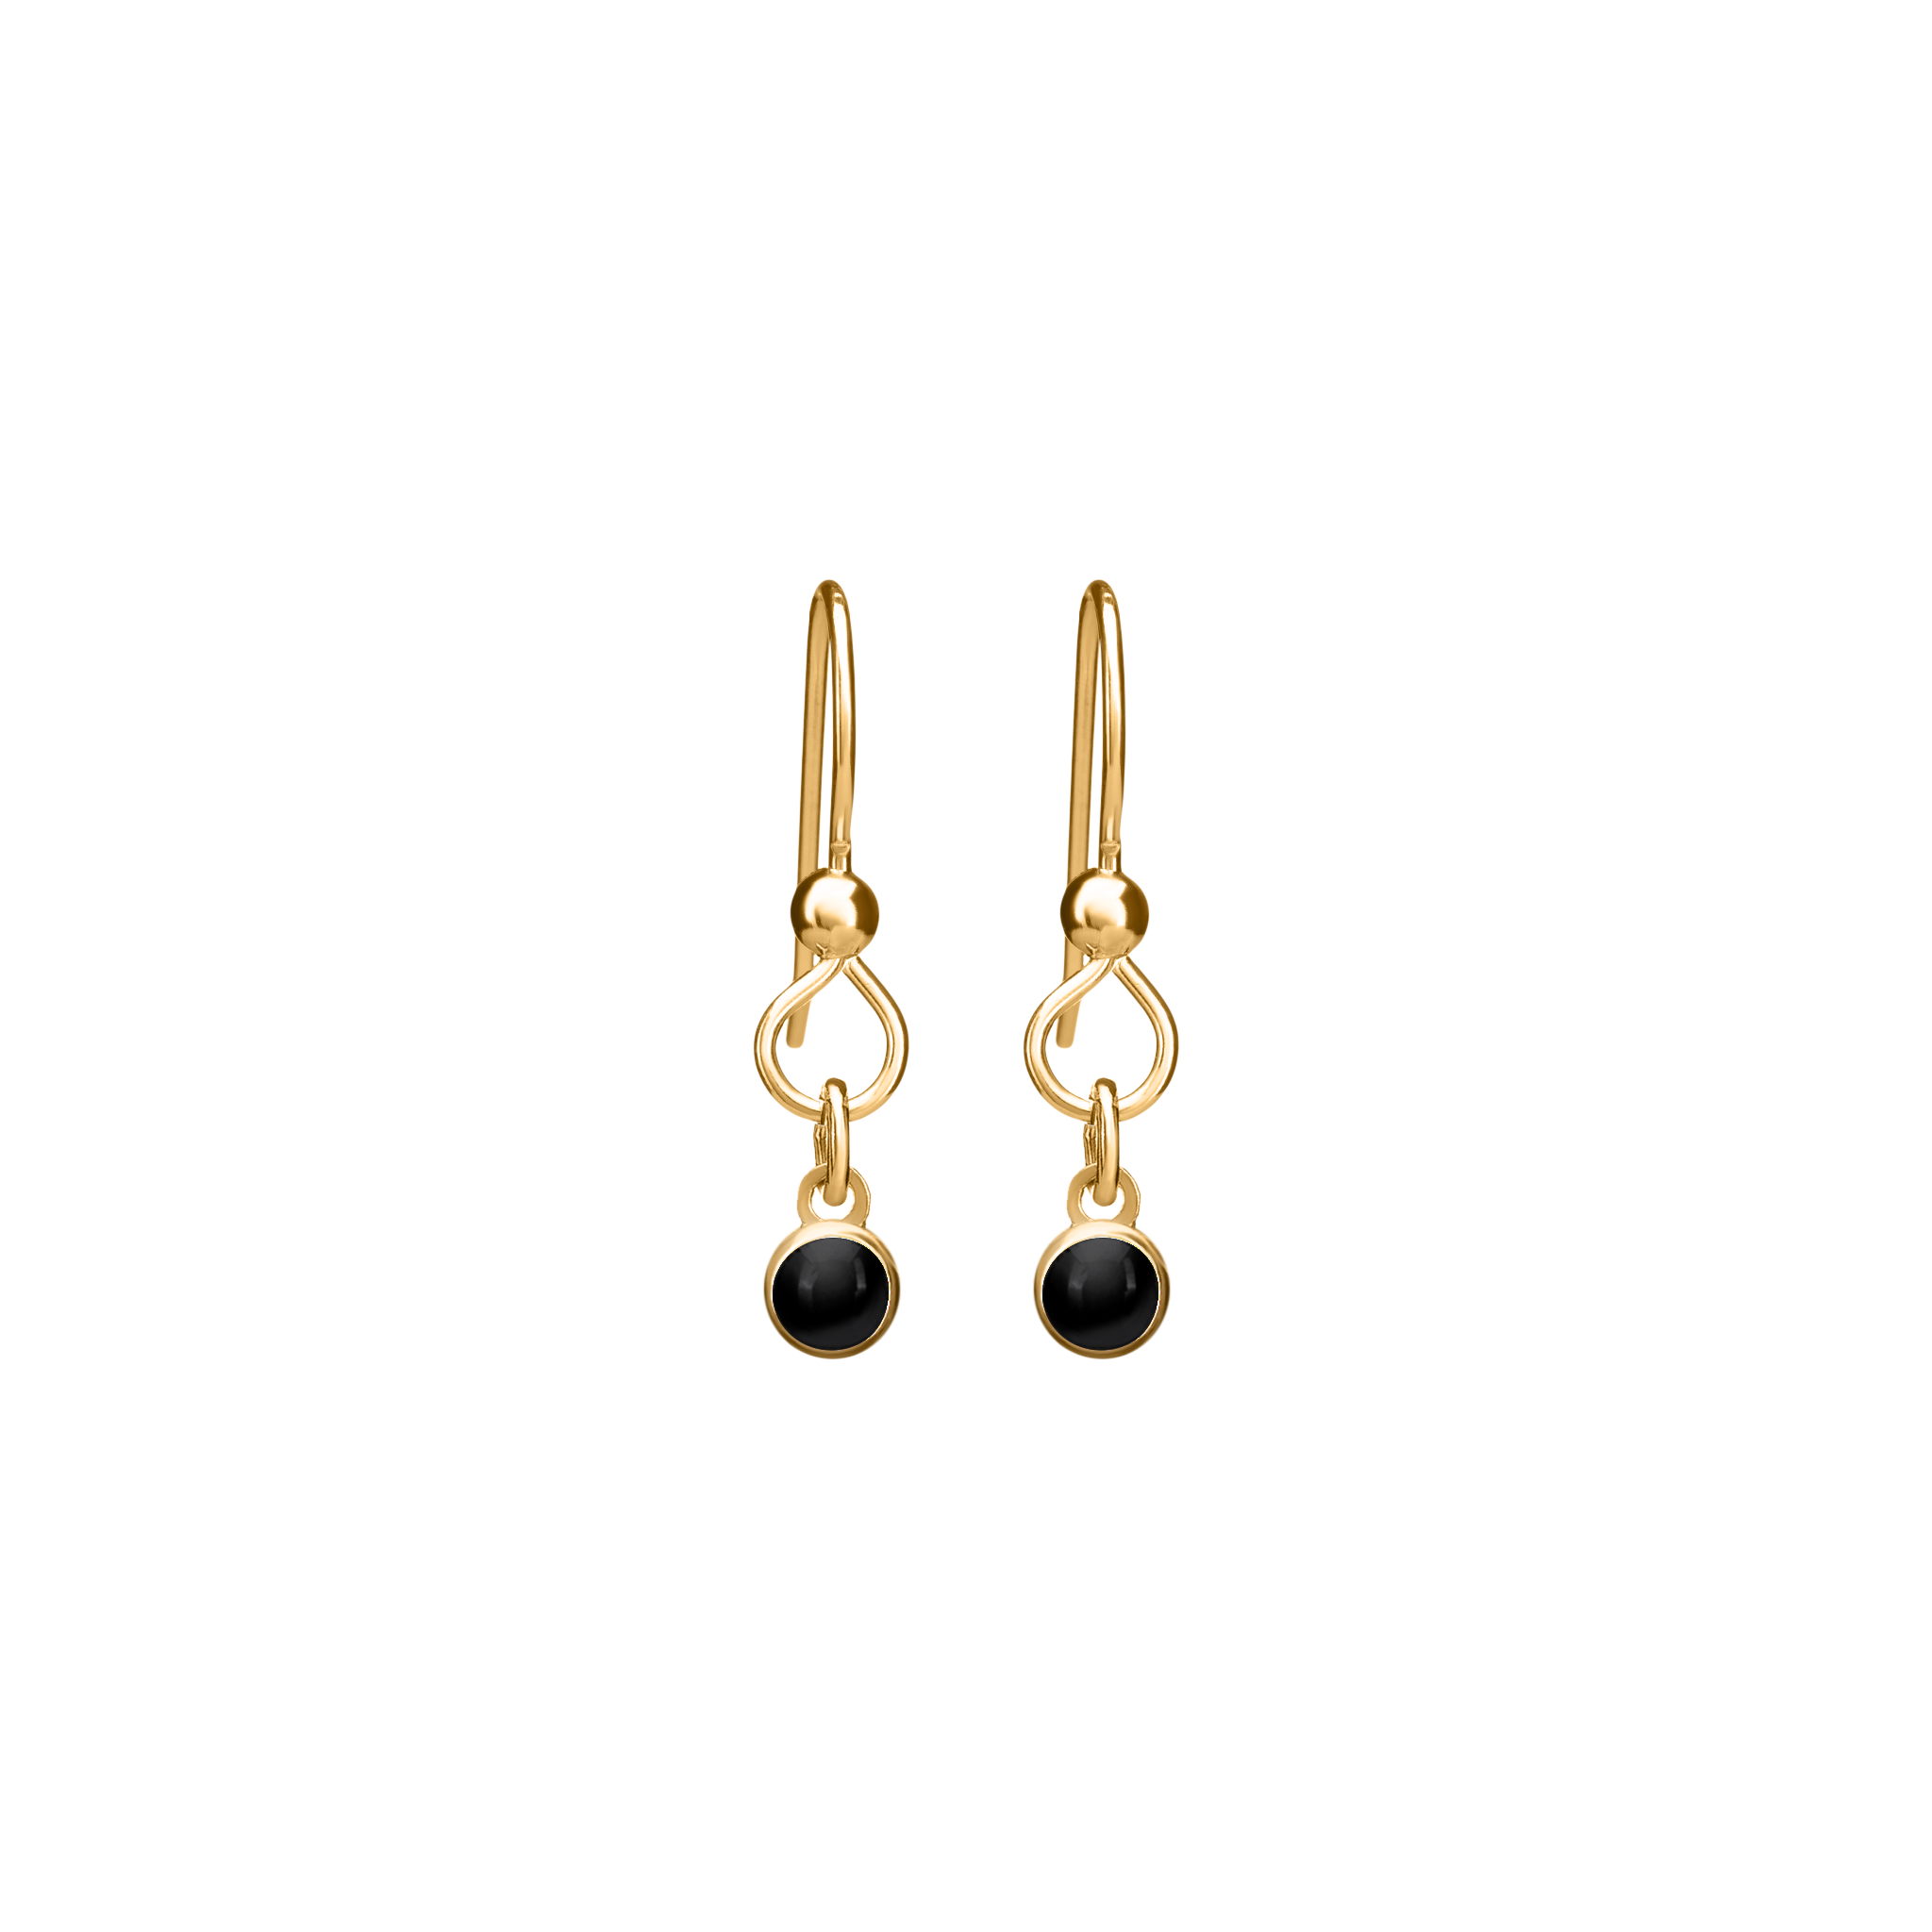 THE PERFECT EARRING  in 14k gold vermeil